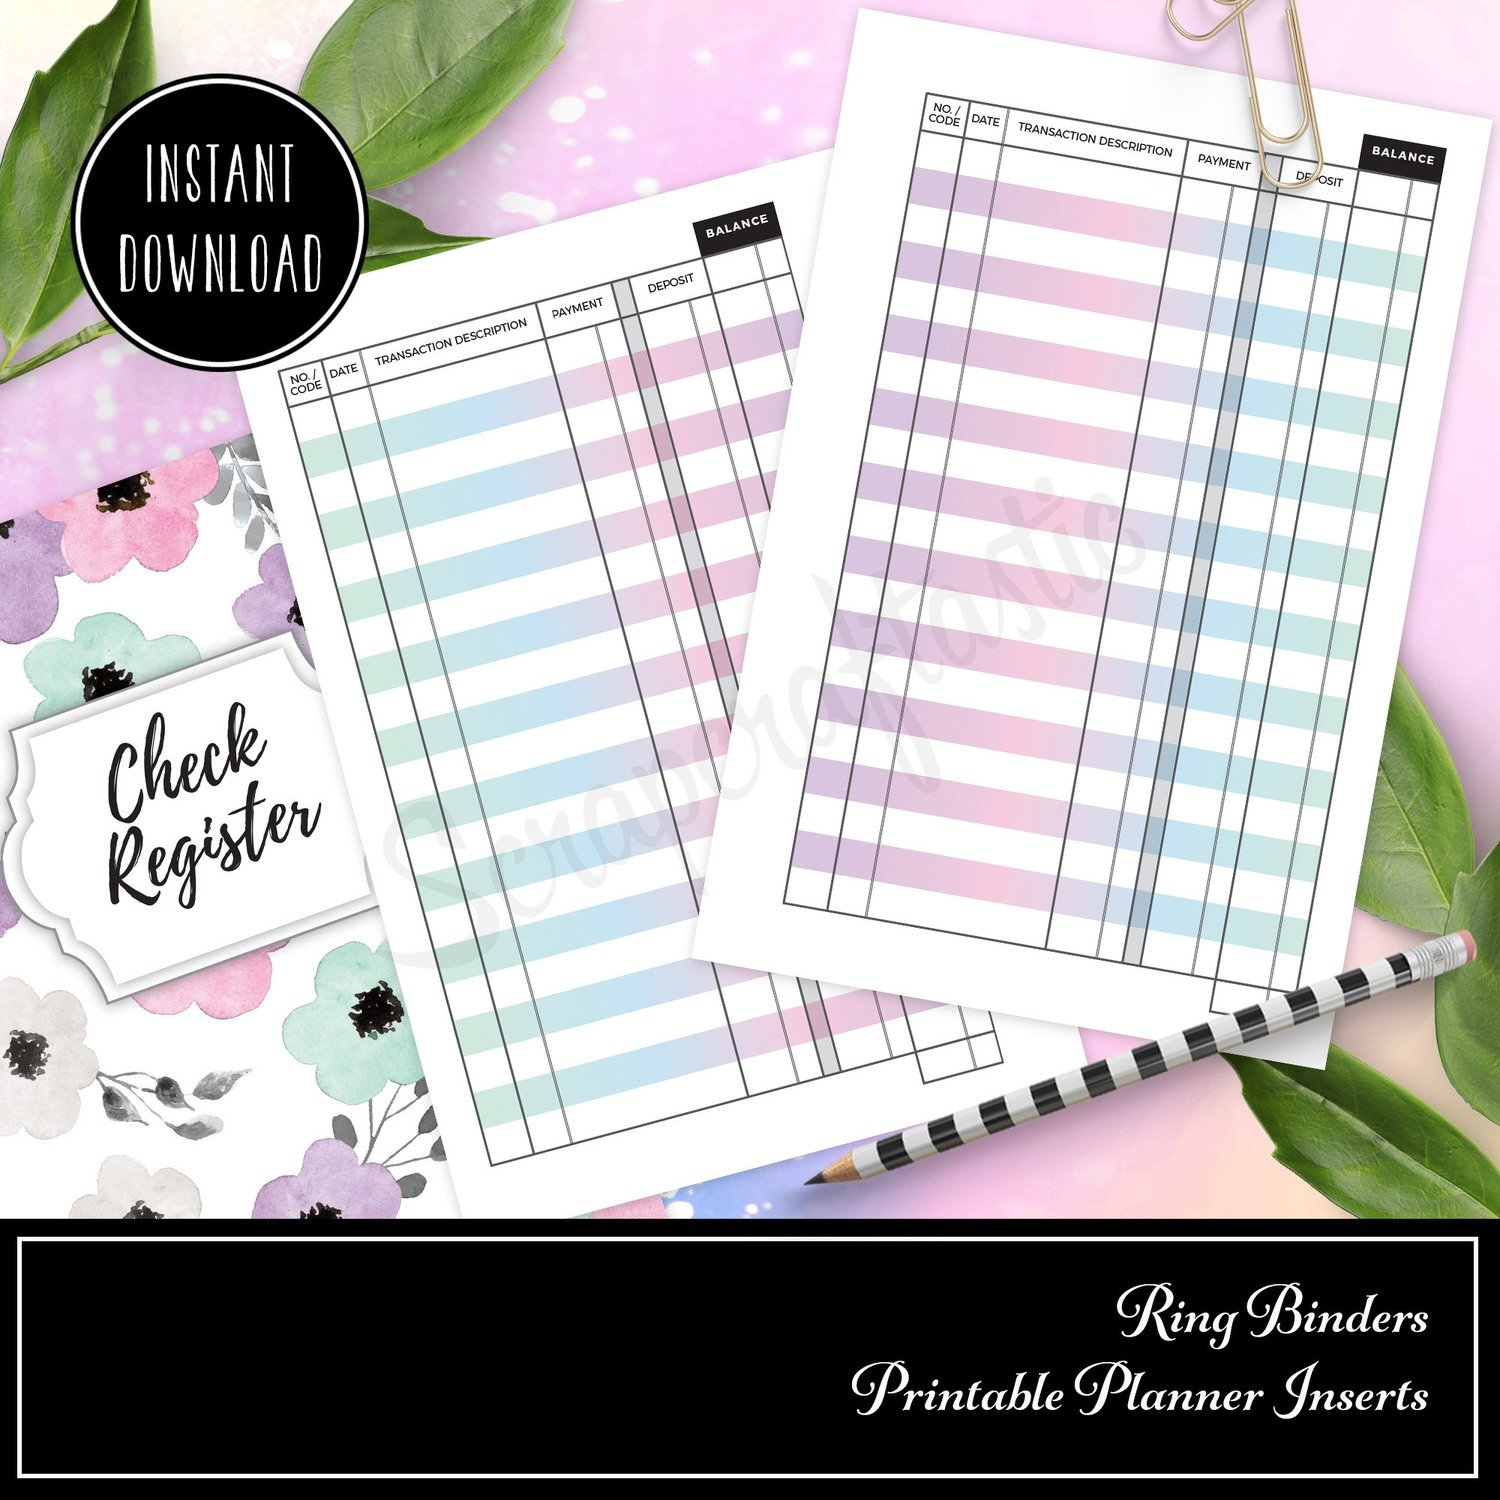 PERSONAL WIDE RINGS - Check Register Binder Rings Printable Insert